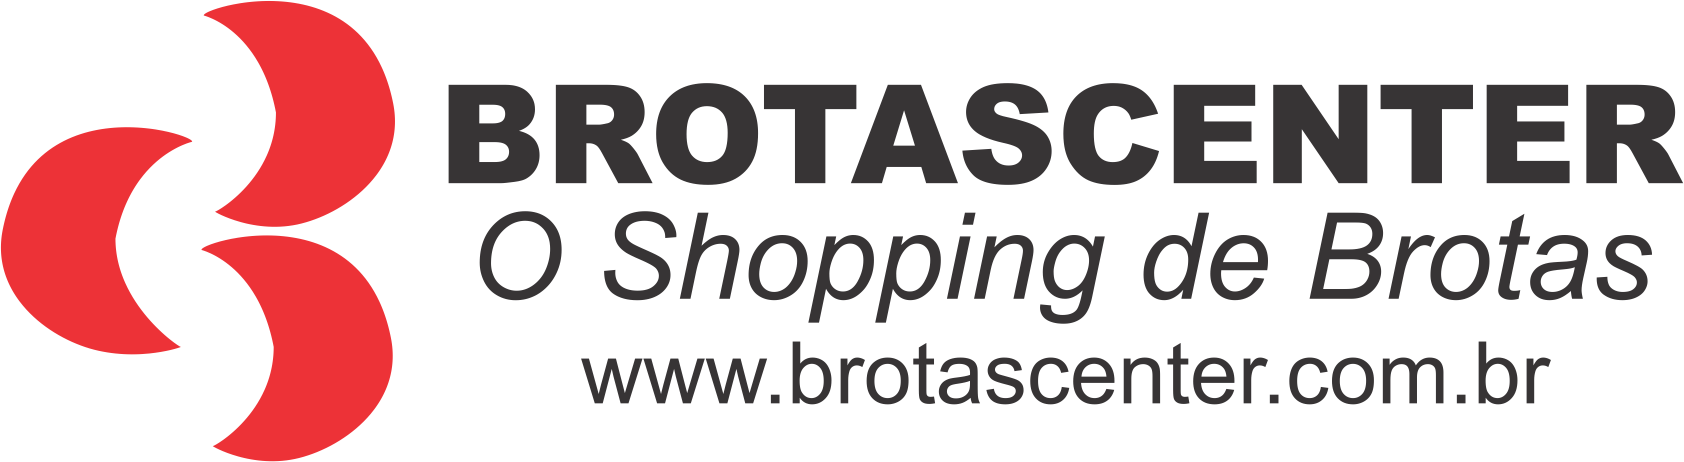 Brotascenter